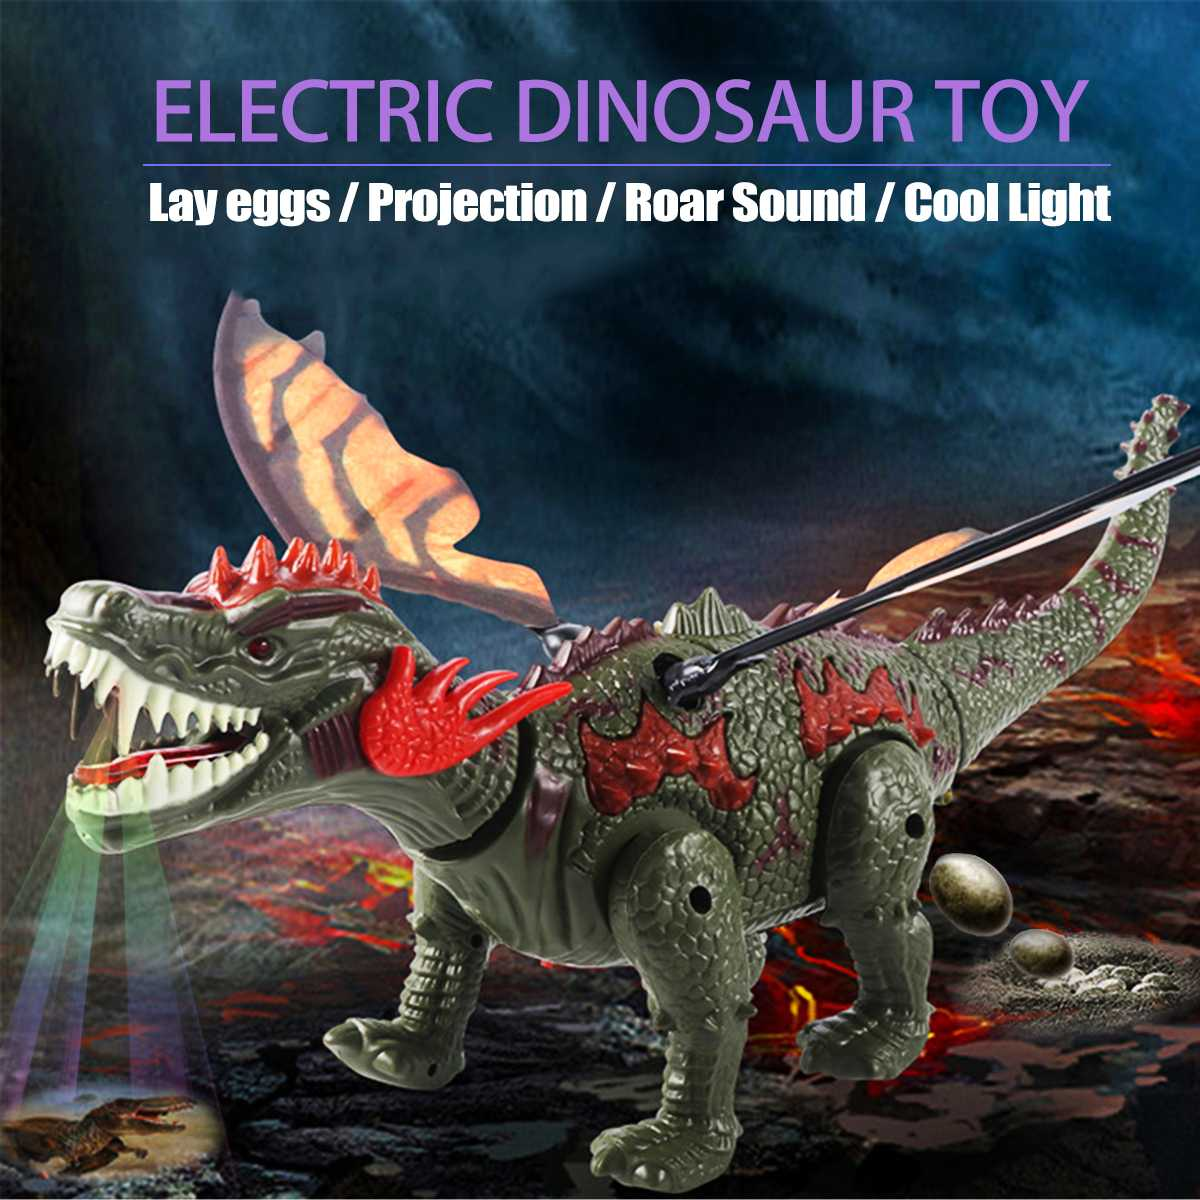 Electric Walking Dinosaur Toy With Wing Lay Eggs Projection Electric Dinosaur Colorful Lights Roar Sounds Kids Enlightening Toy